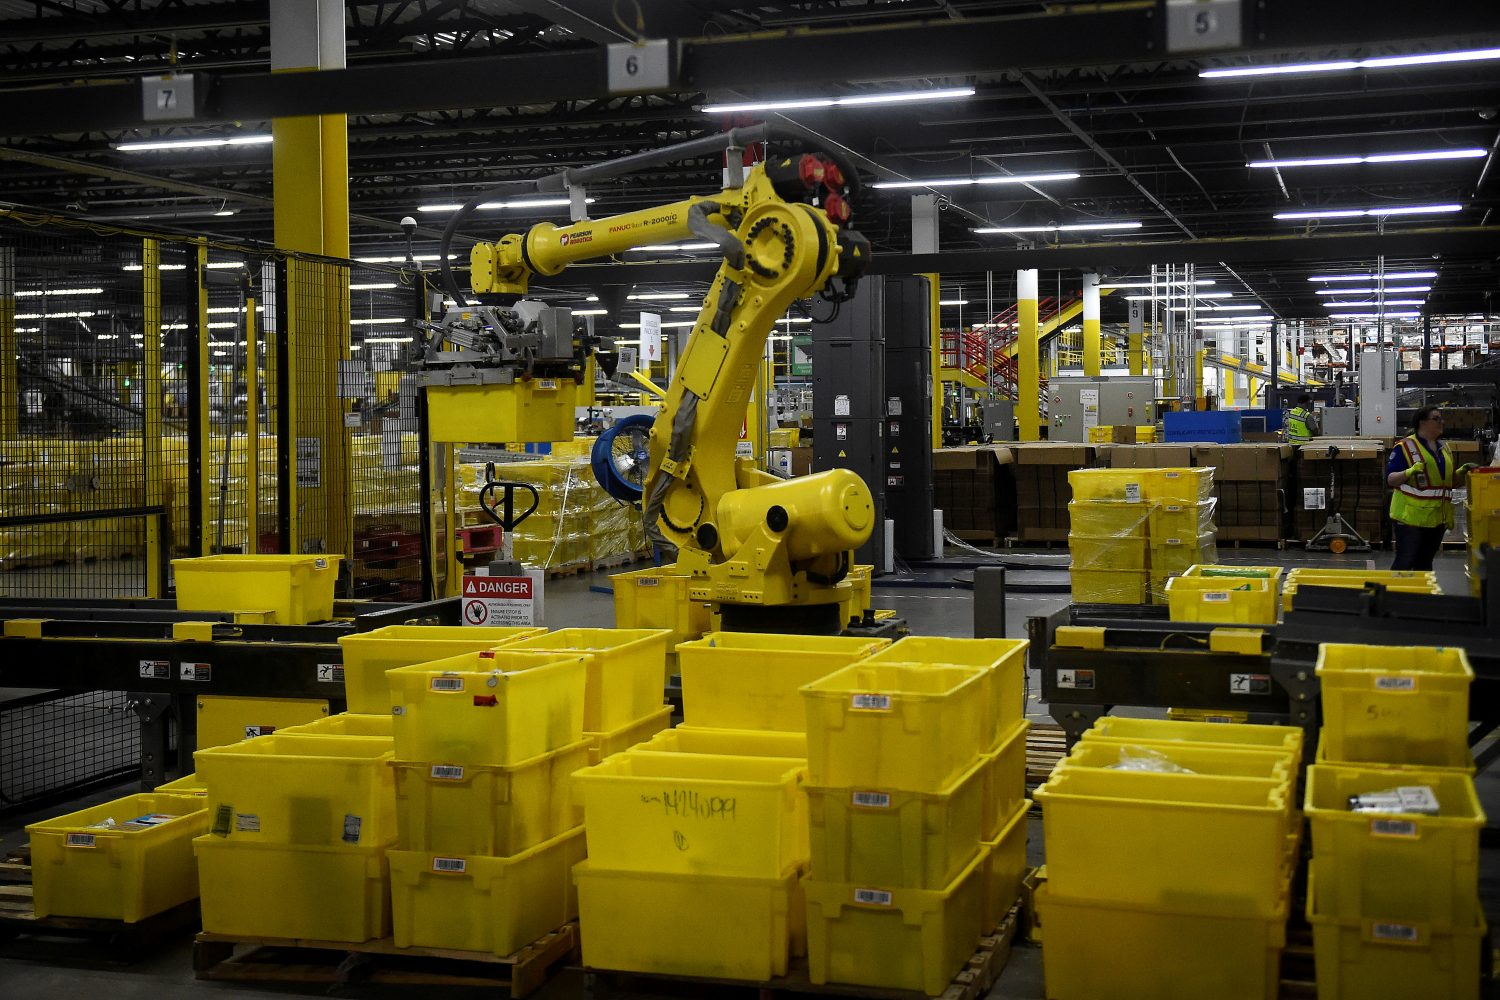 FILE PHOTO: A 6-axis robotic arm picks up sorting containers at the Amazon fulfillment center in Baltimore, Maryland, U.S., April 30, 2019. REUTERS/Clodagh Kilcoyne/File Photo